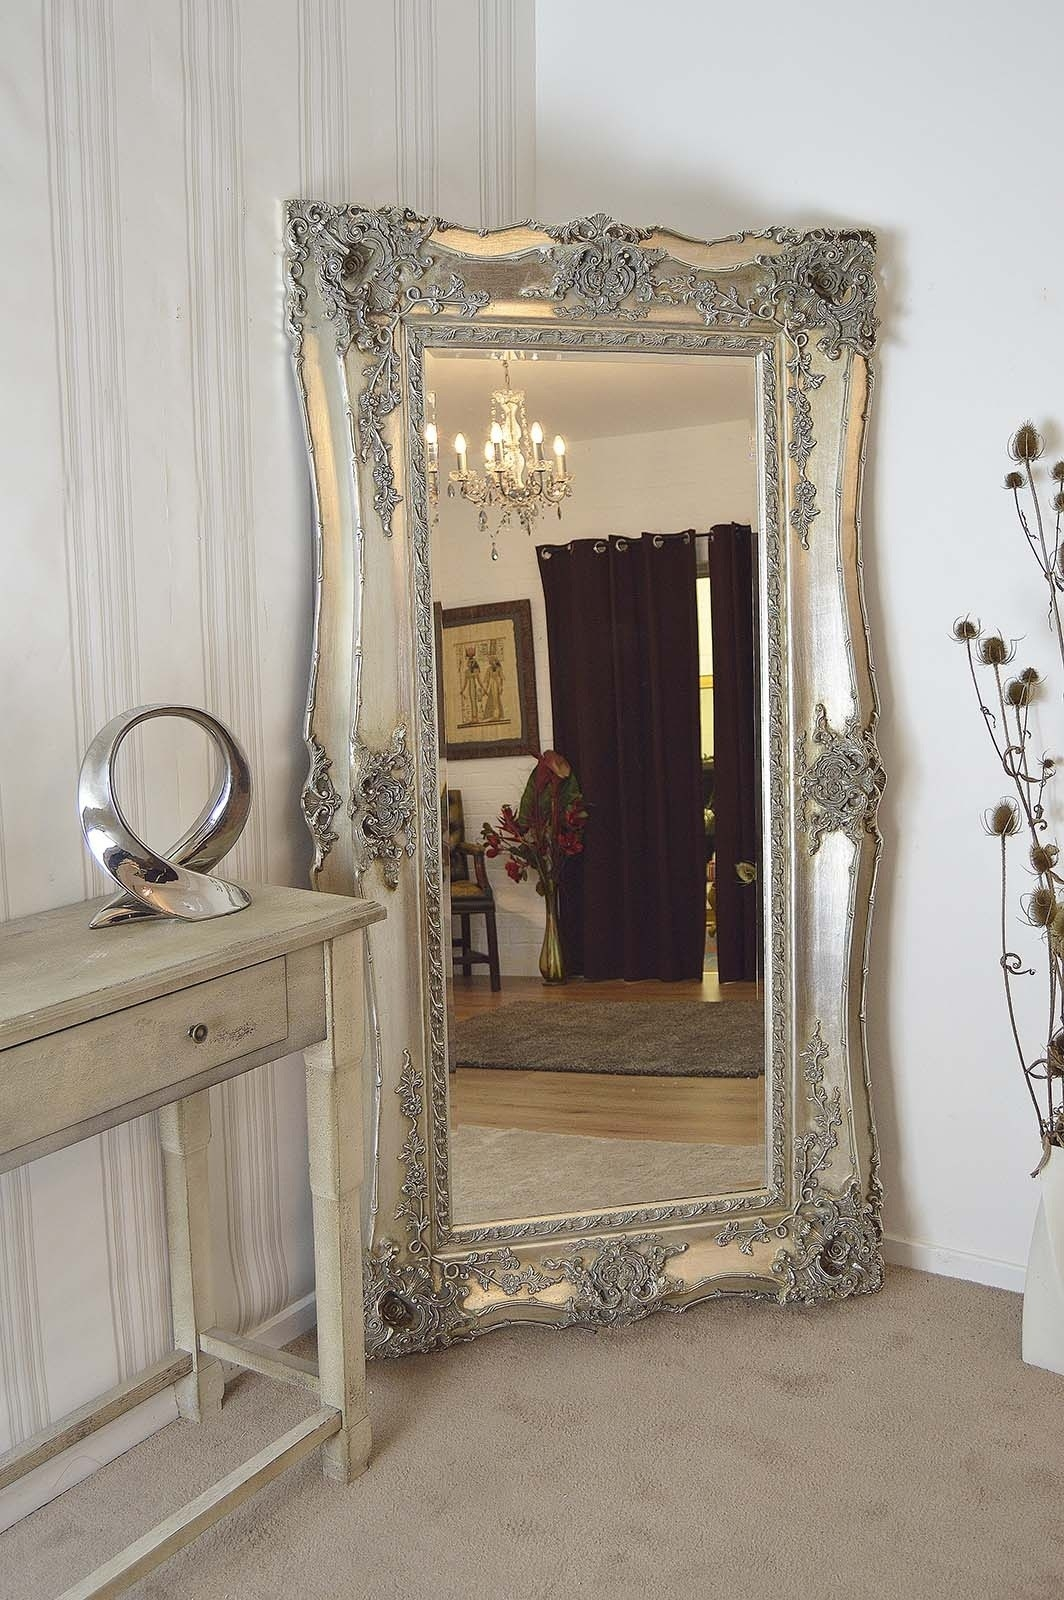 Bedroom Furniture Large Gold Mirror Free Standing Mirror Wooden Regarding Antique Dressing Mirror Full Length (Image 8 of 15)